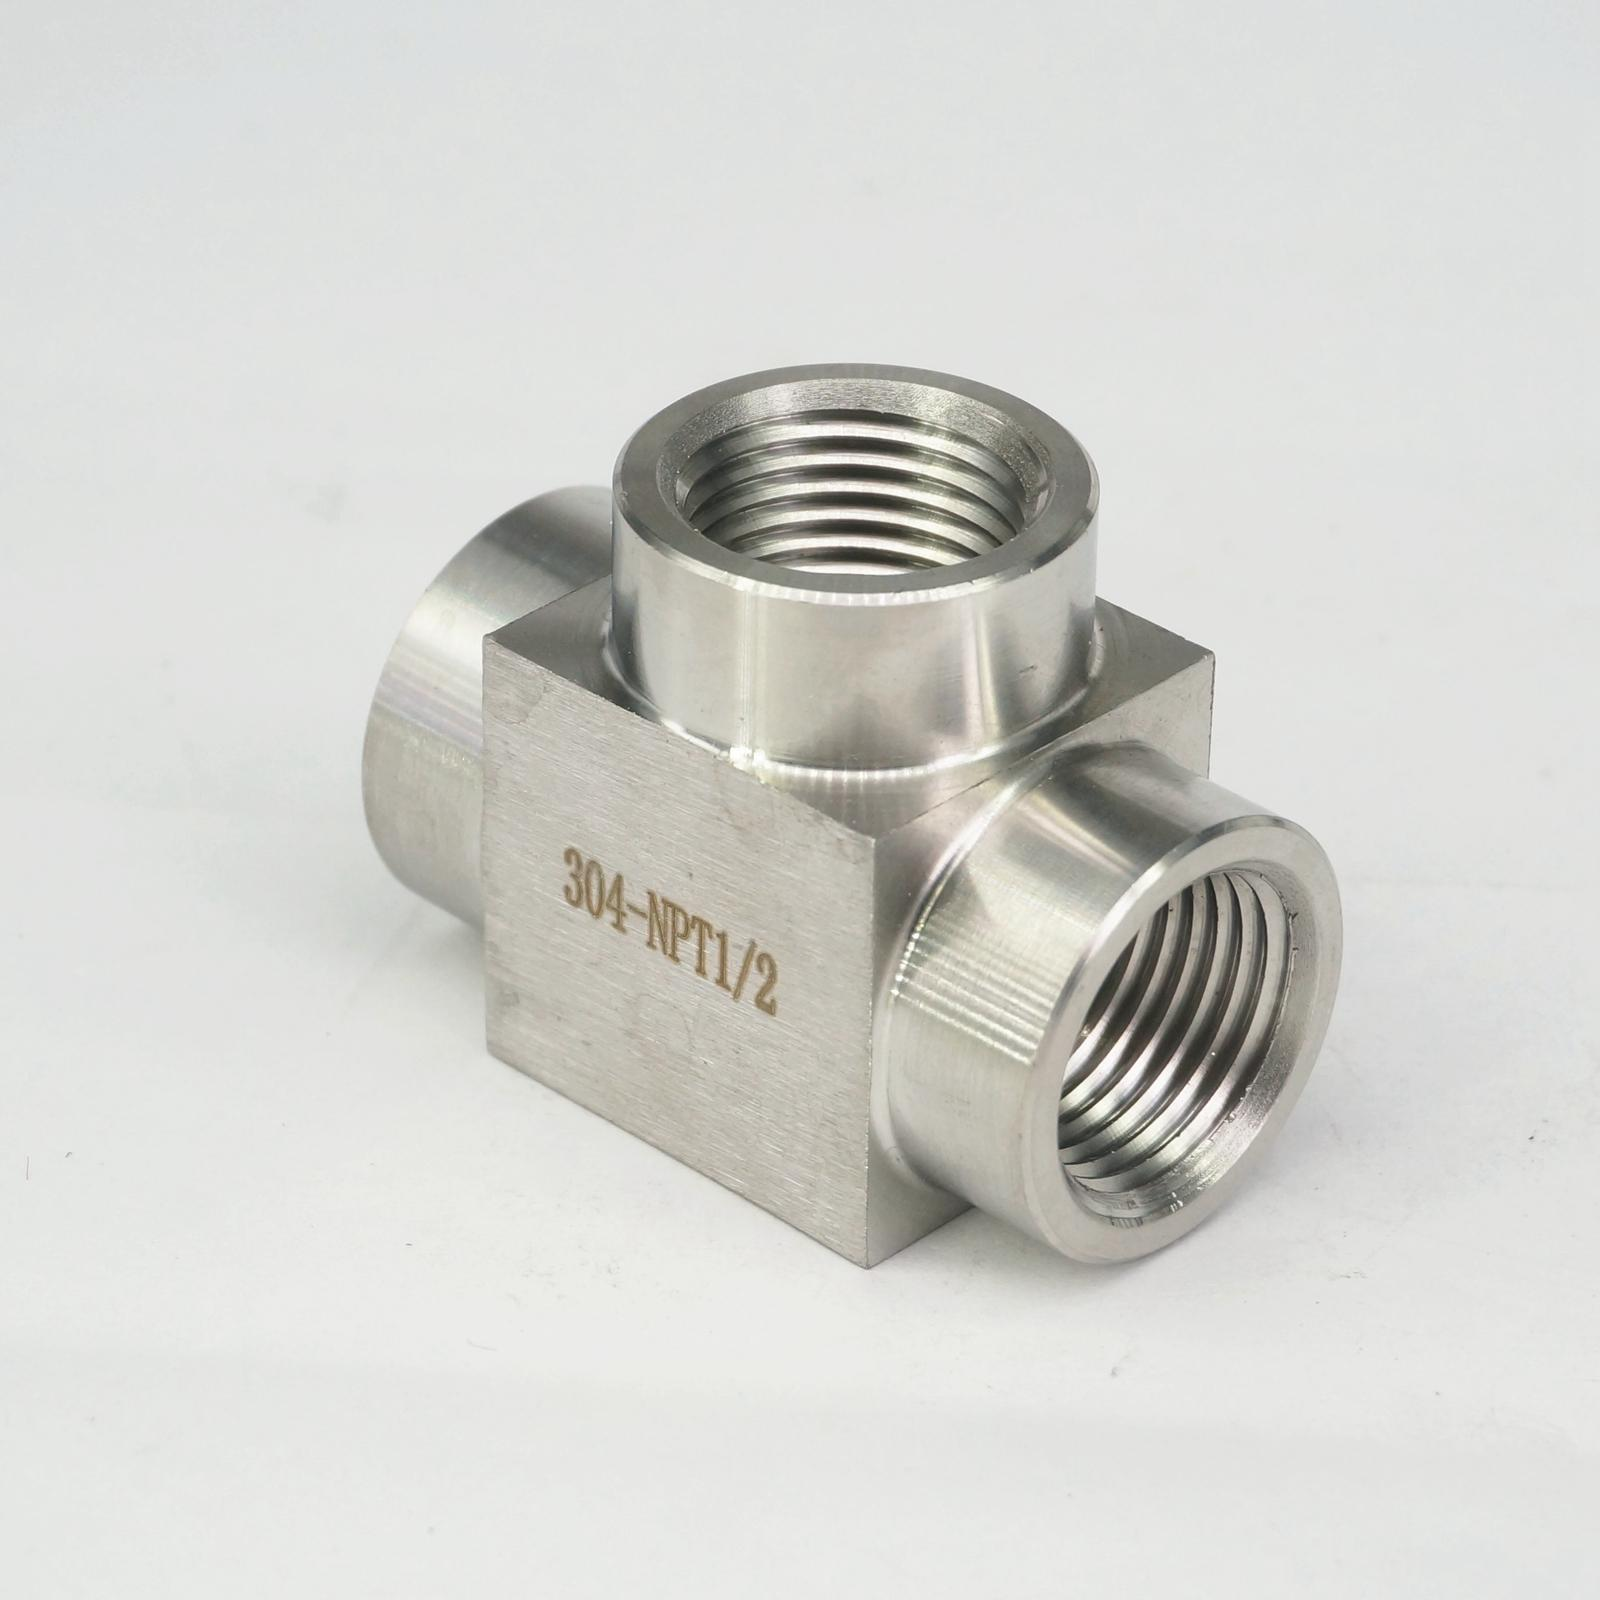 """1 piece x 1-1//2/"""" Tee 3 way Female Stainless Steel 304 Threaded Pipe Fitting NPT"""